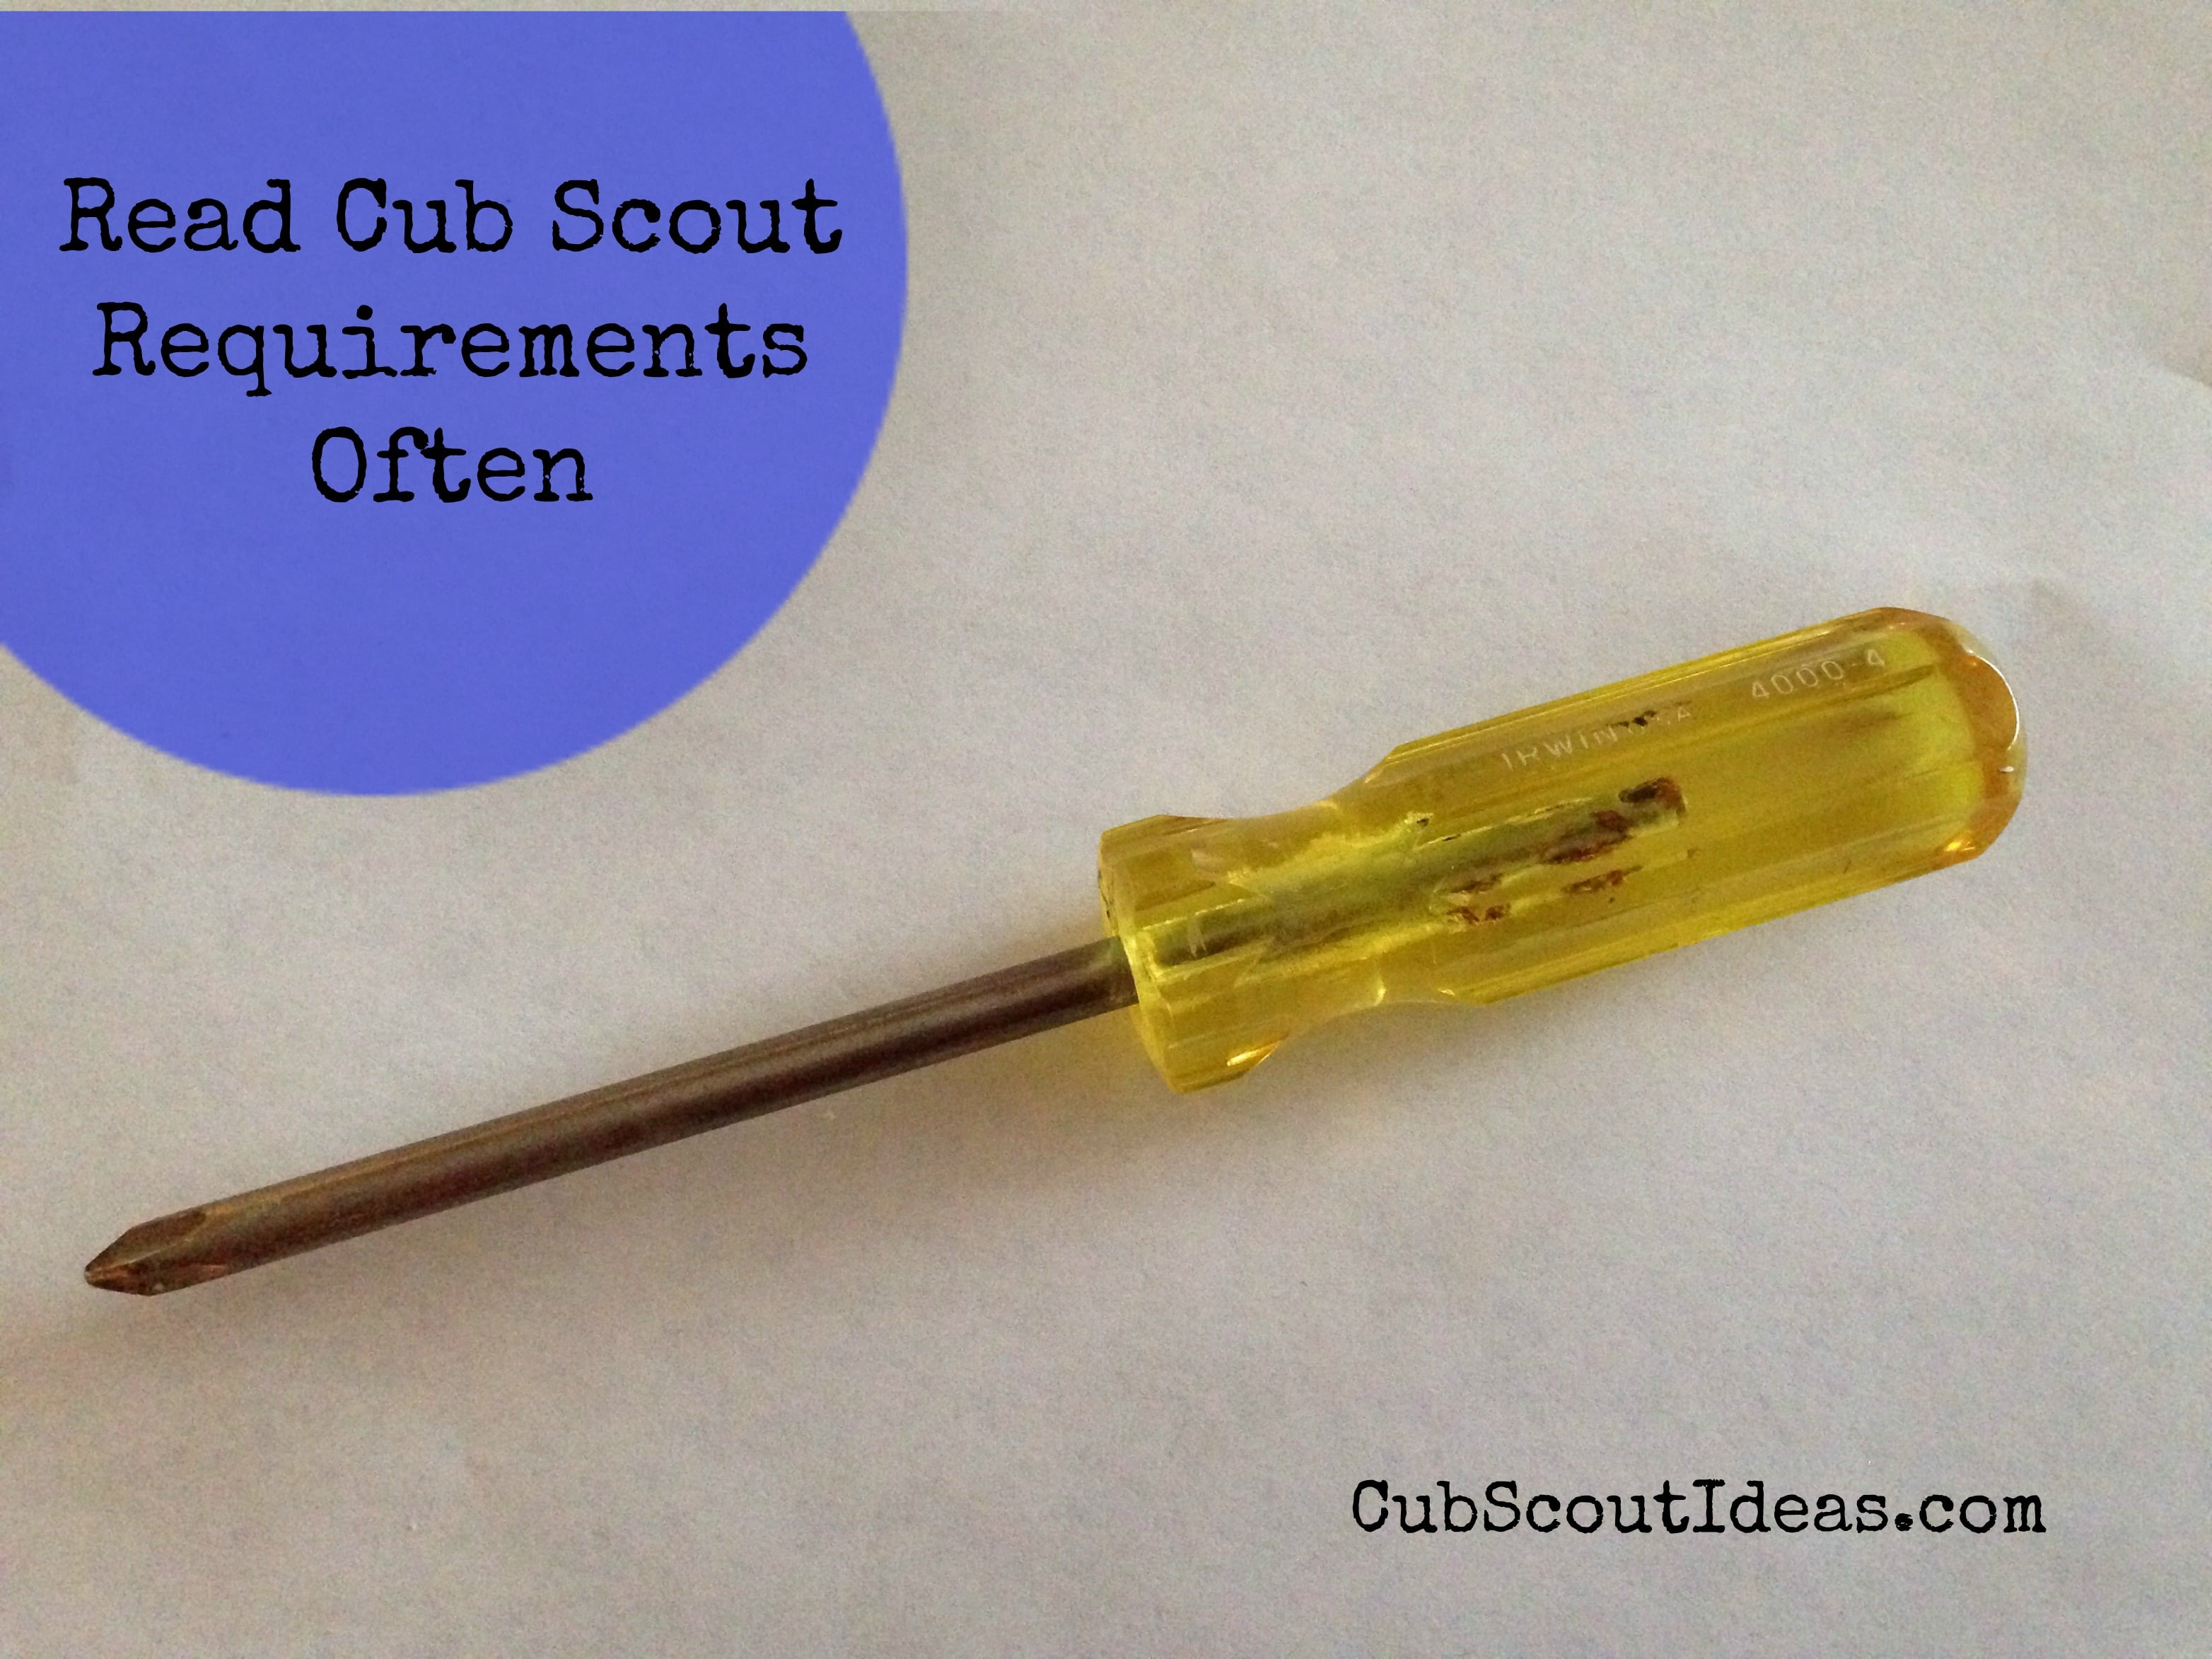 Review Cub Scout Requirements Often